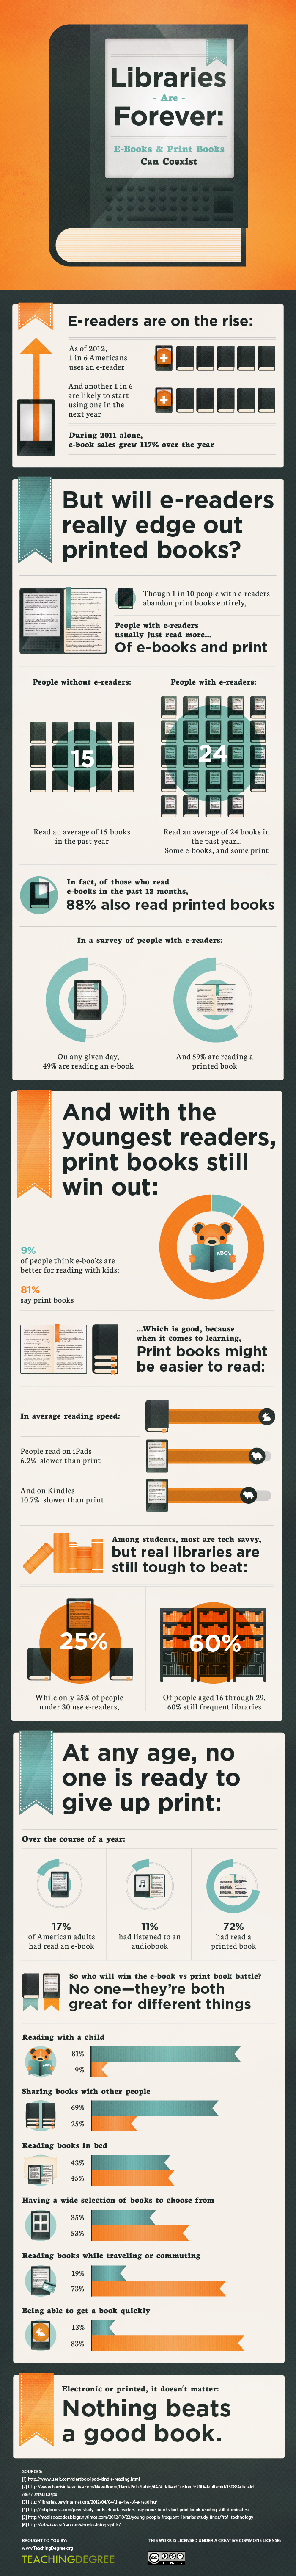 Libraries are forever - infographic